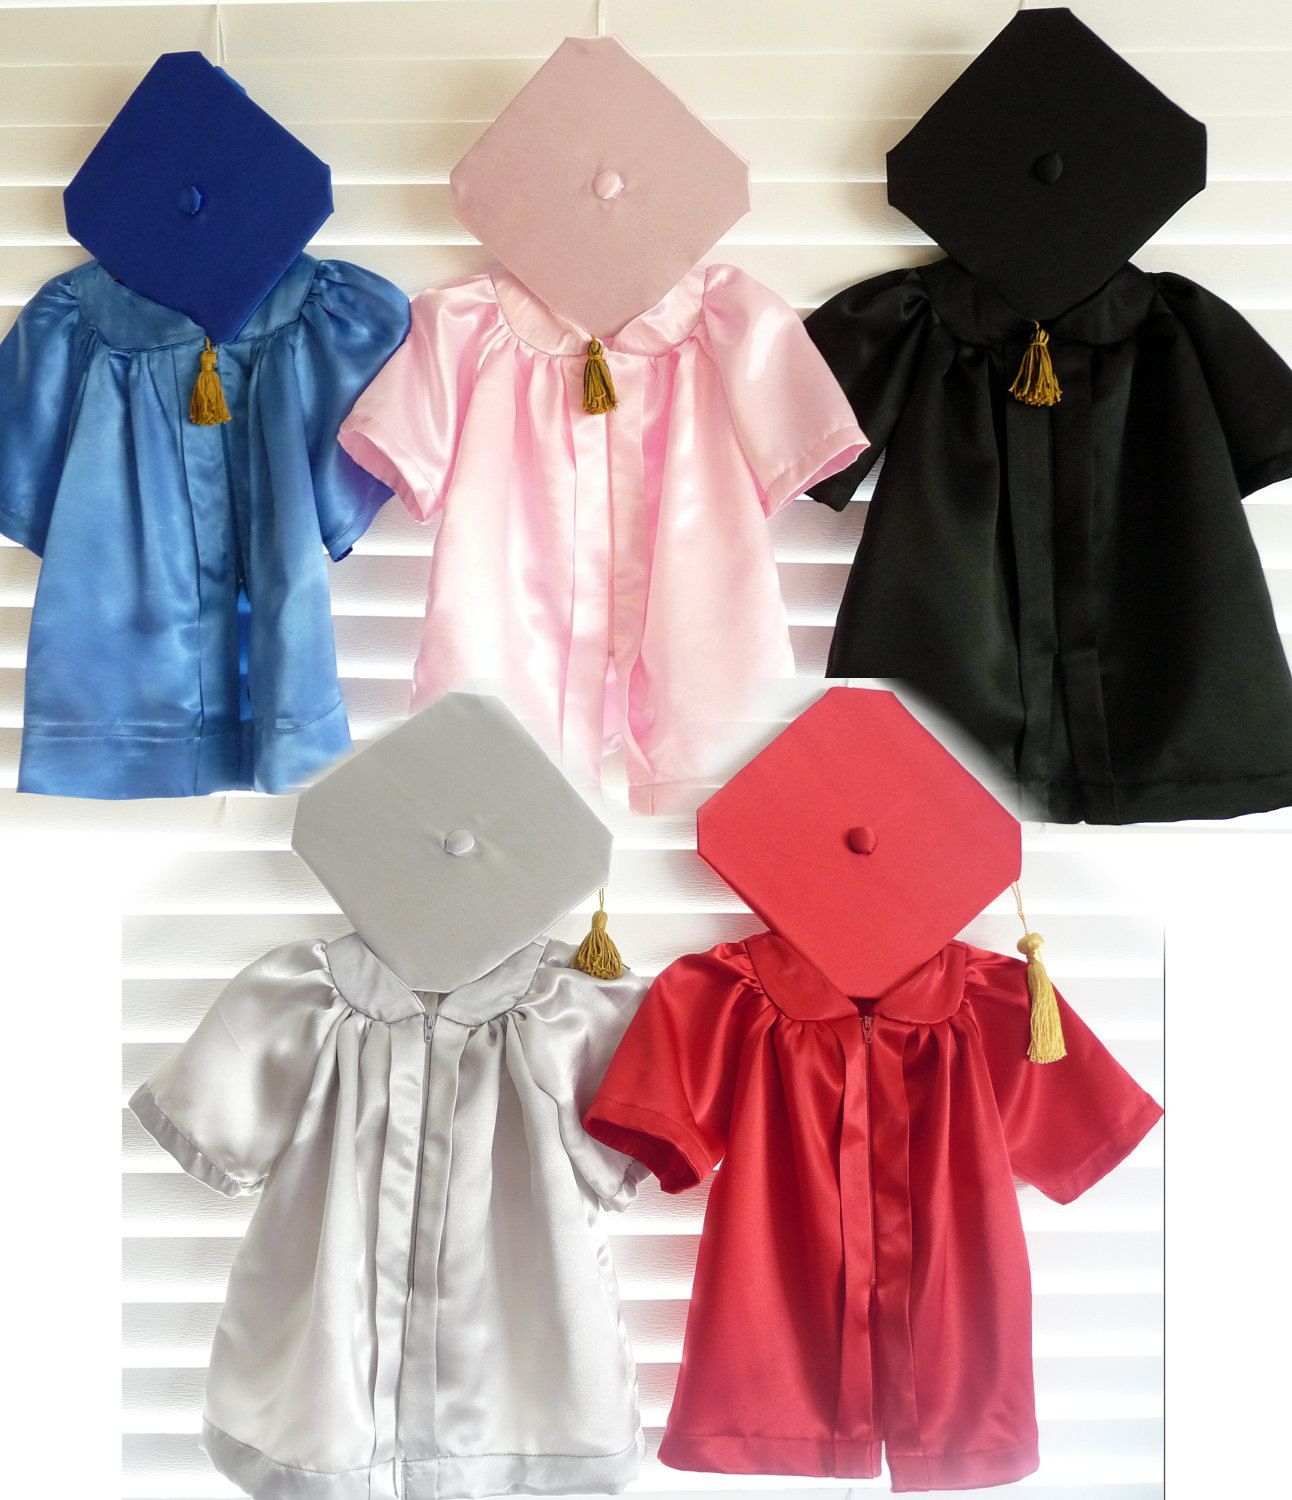 Infant Graduation Cap and Gown/ Robe Outfit for Baby and Toddler ...